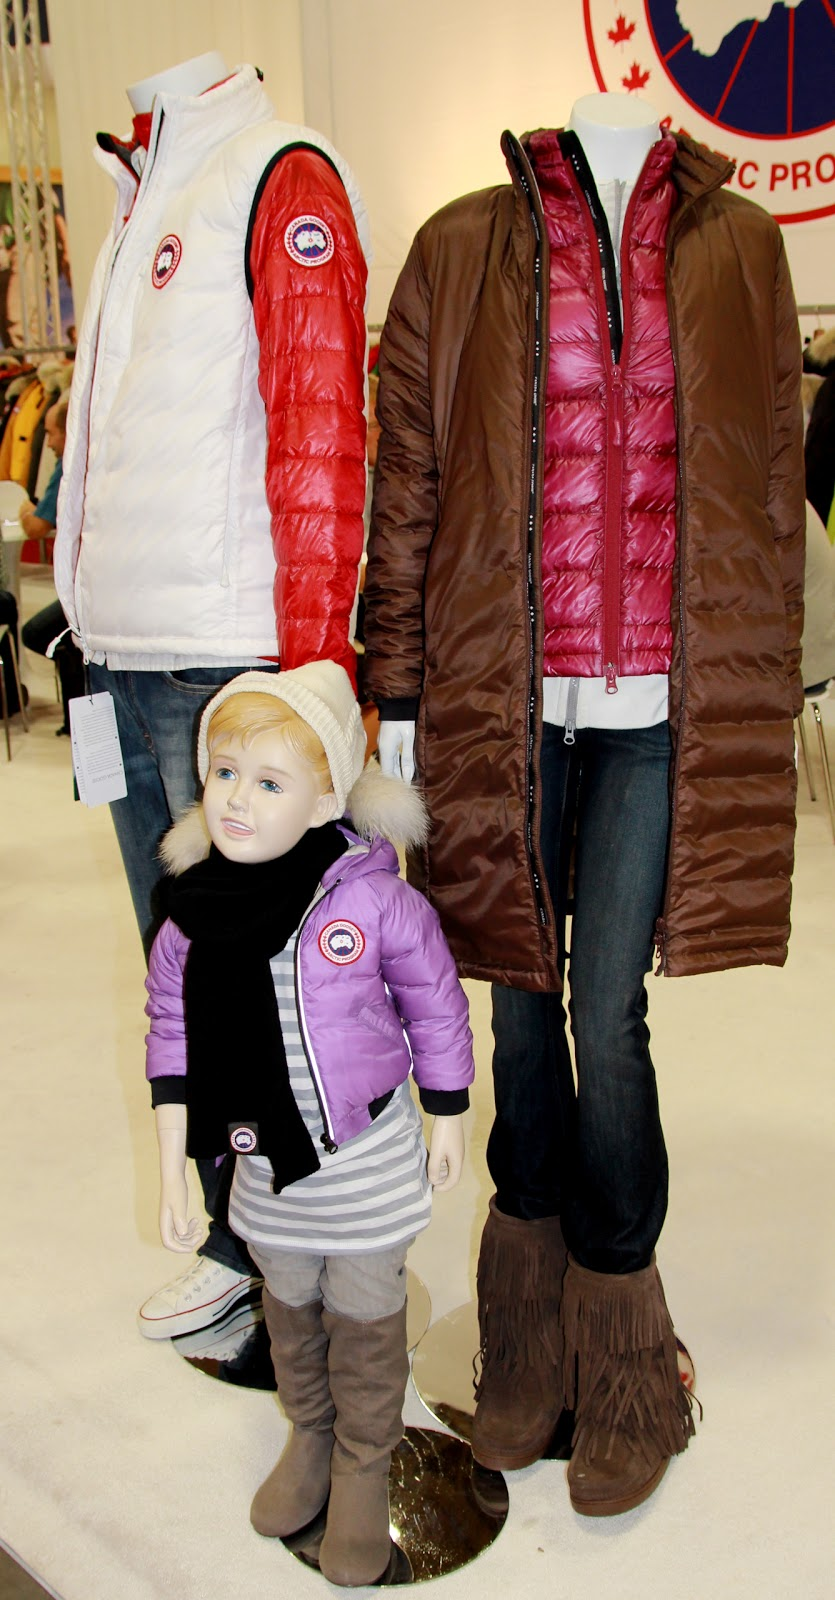 Canada Goose jackets outlet shop - LYRA MAG.: CANADA GOOSE CAPSULE COLLECTION Spring 2012